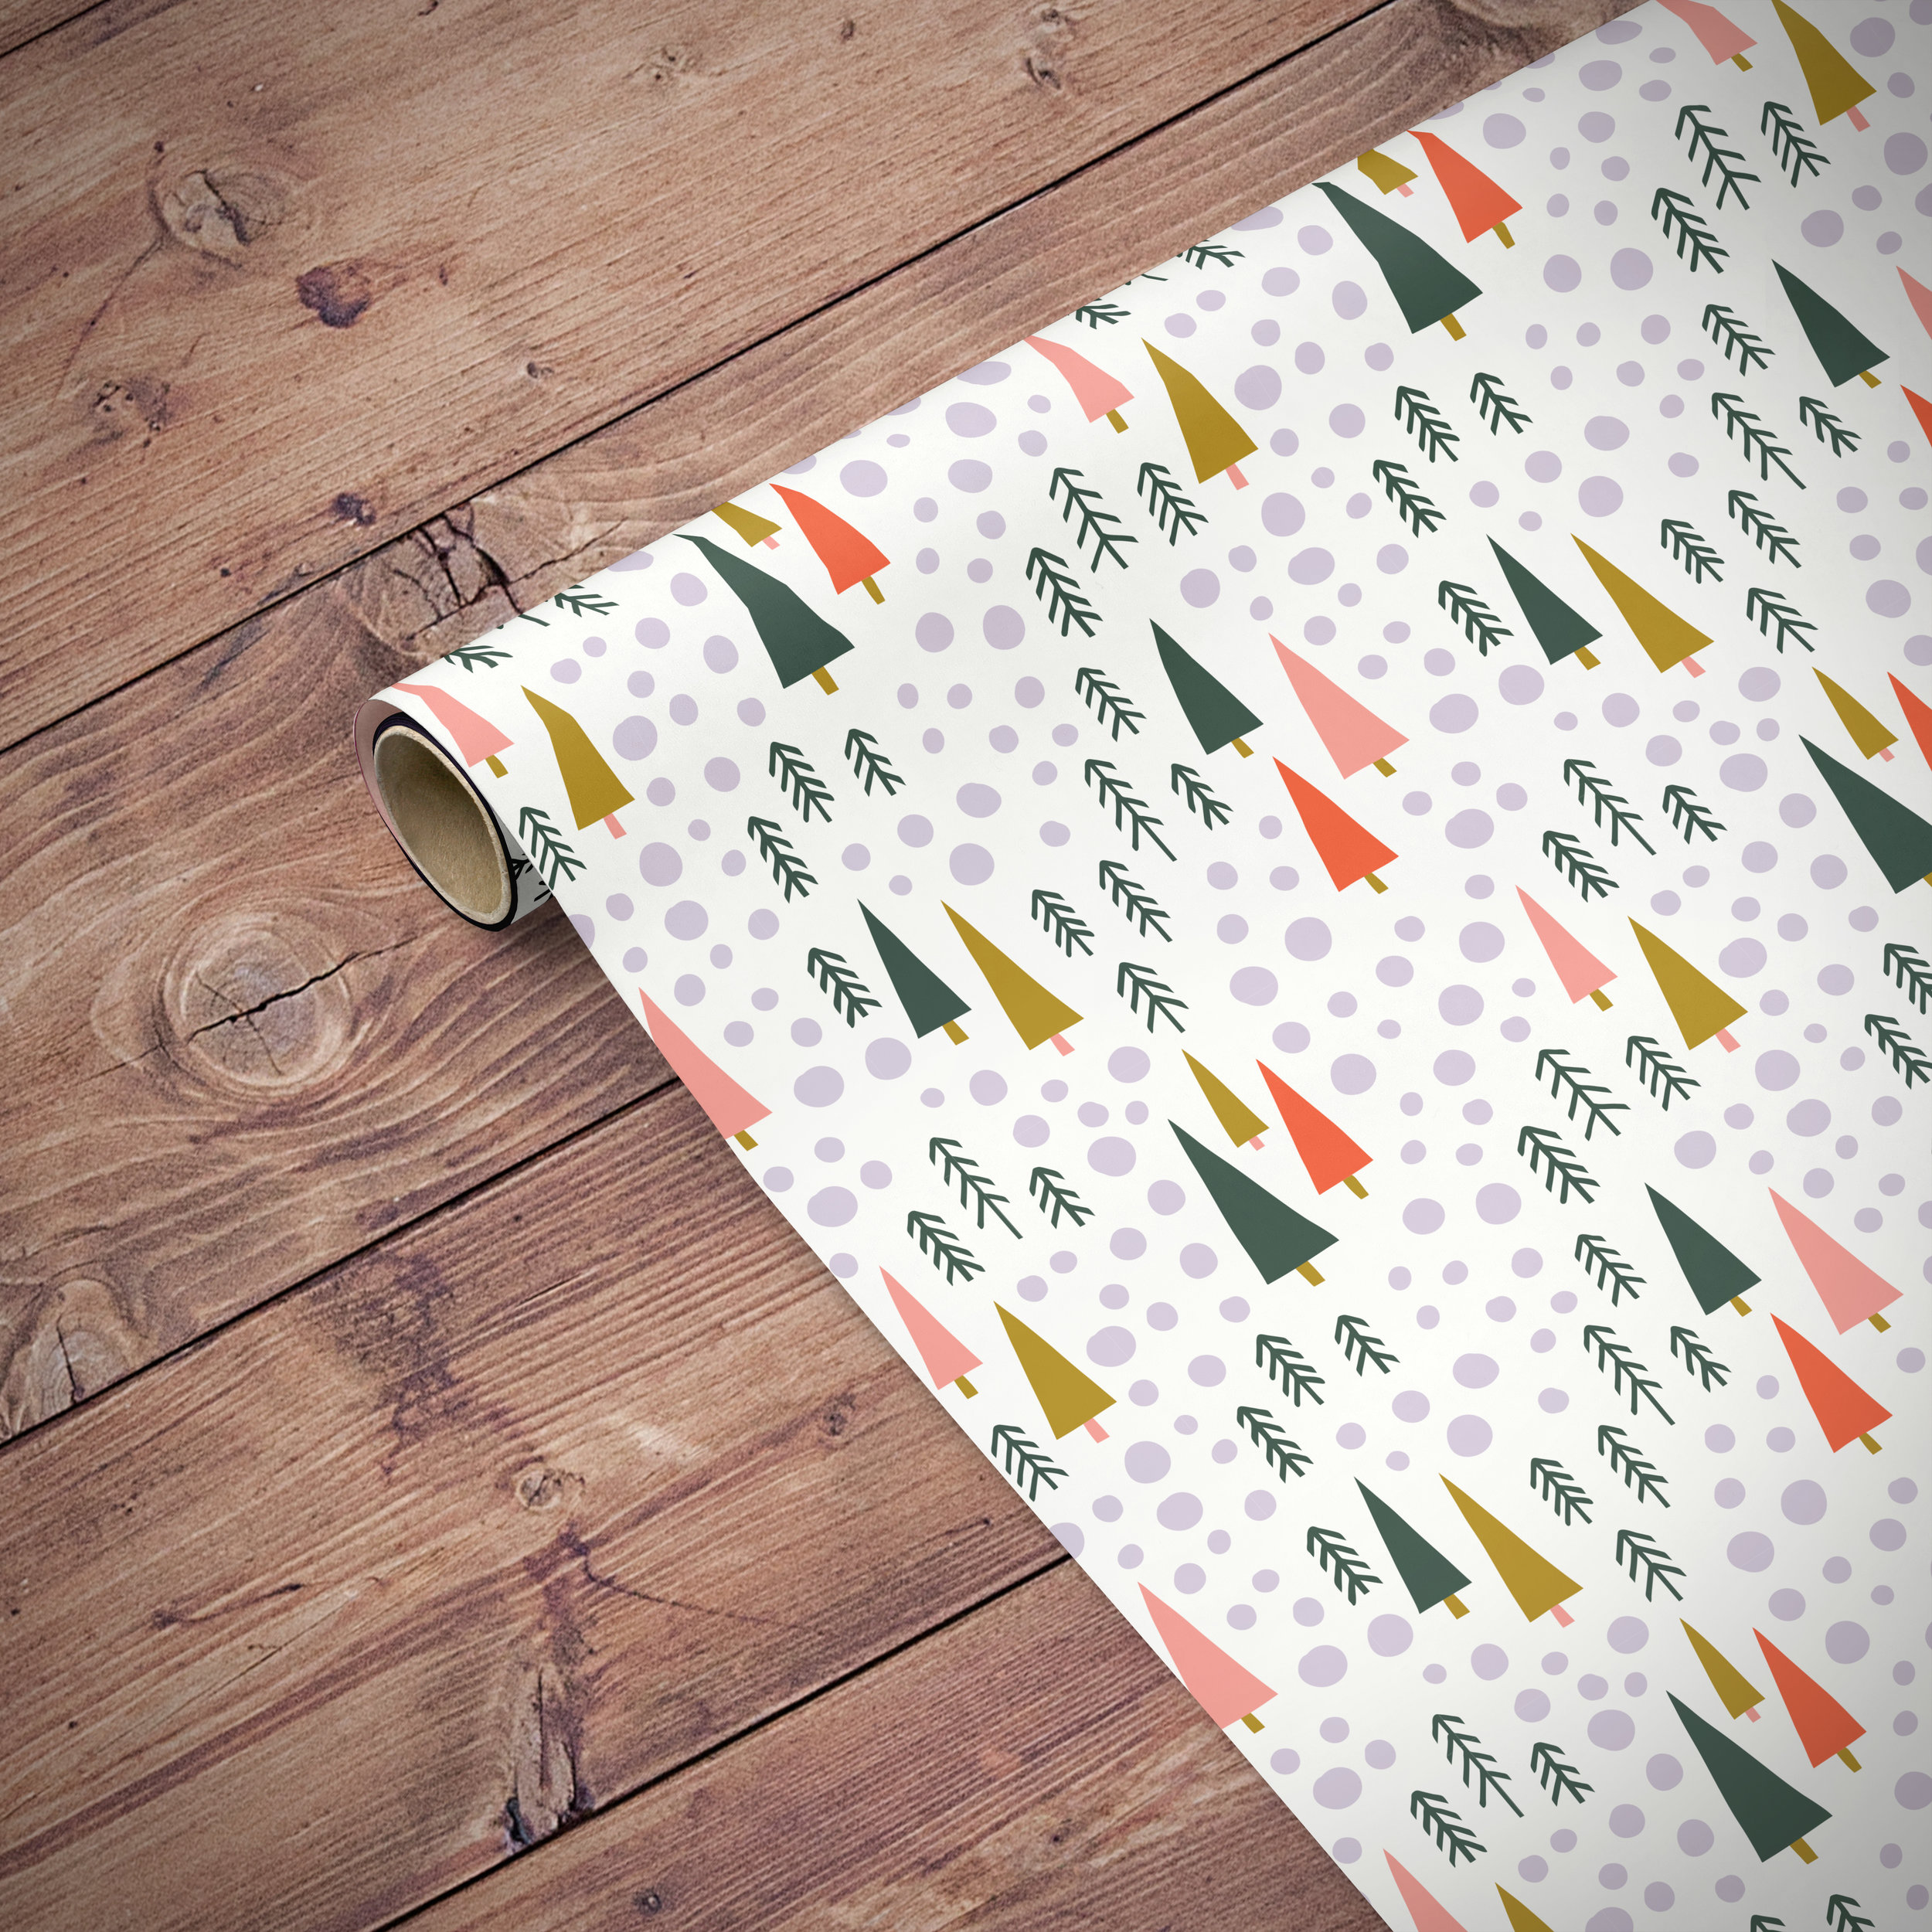 wrappingpaper_white-forest-pattern_majaronnback.jpg